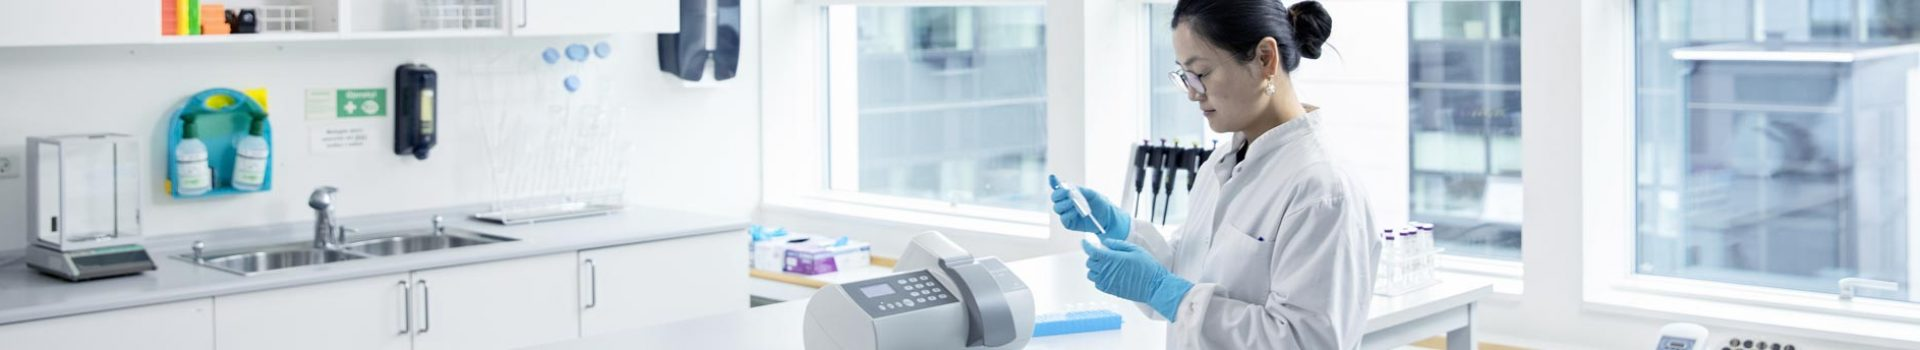 Scientist using the NucleoCounter® SP-100™ - Automated Sperm Cell Counter in the lab